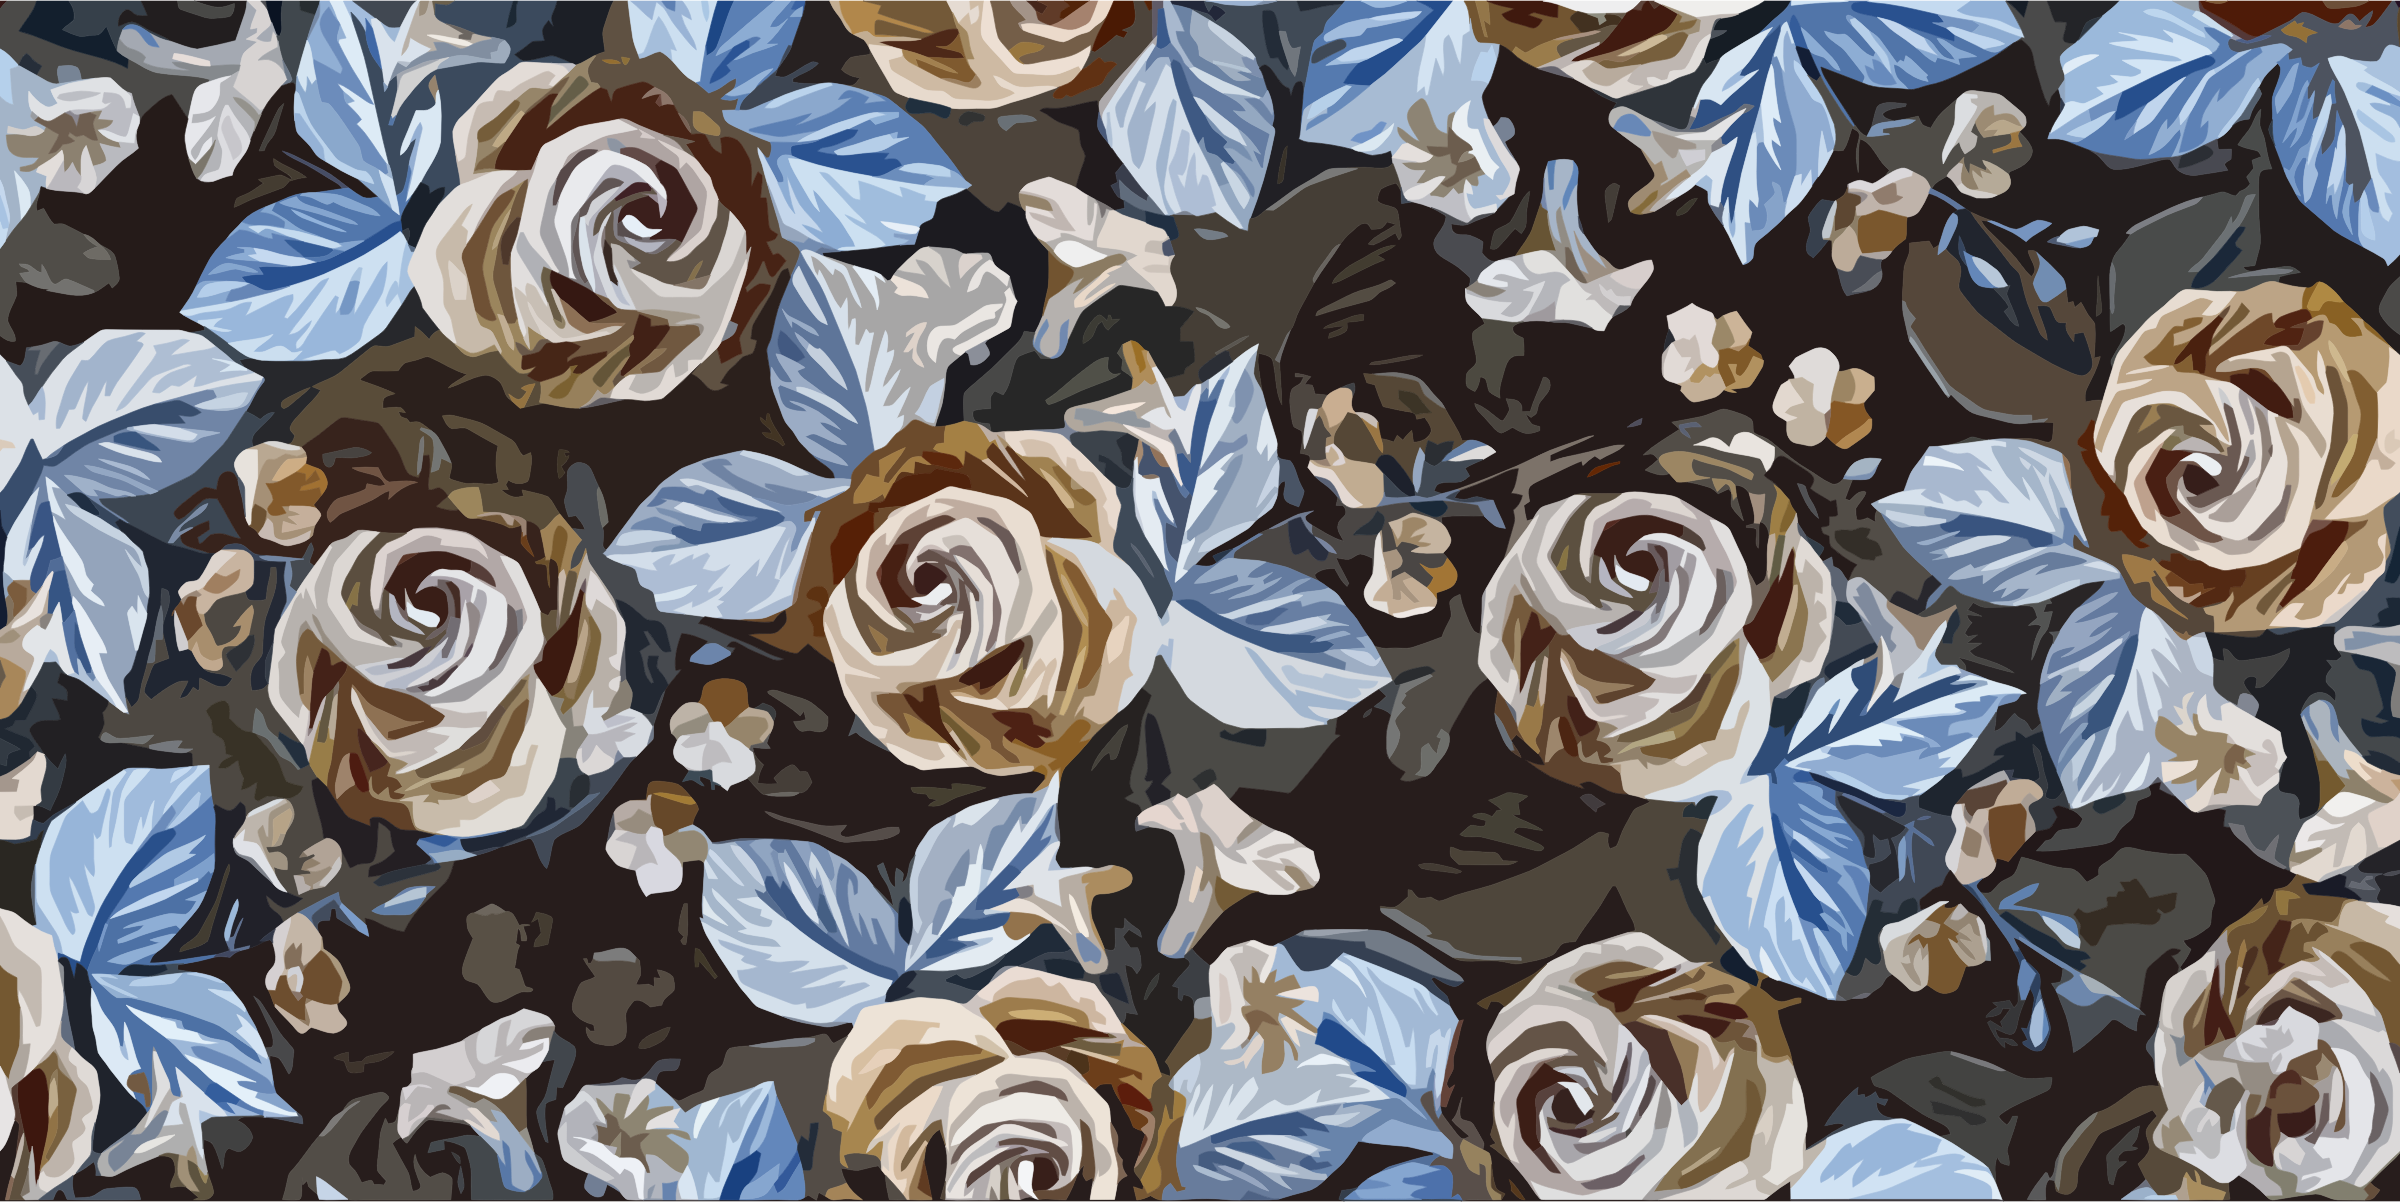 Floral Roses Background by GDJ